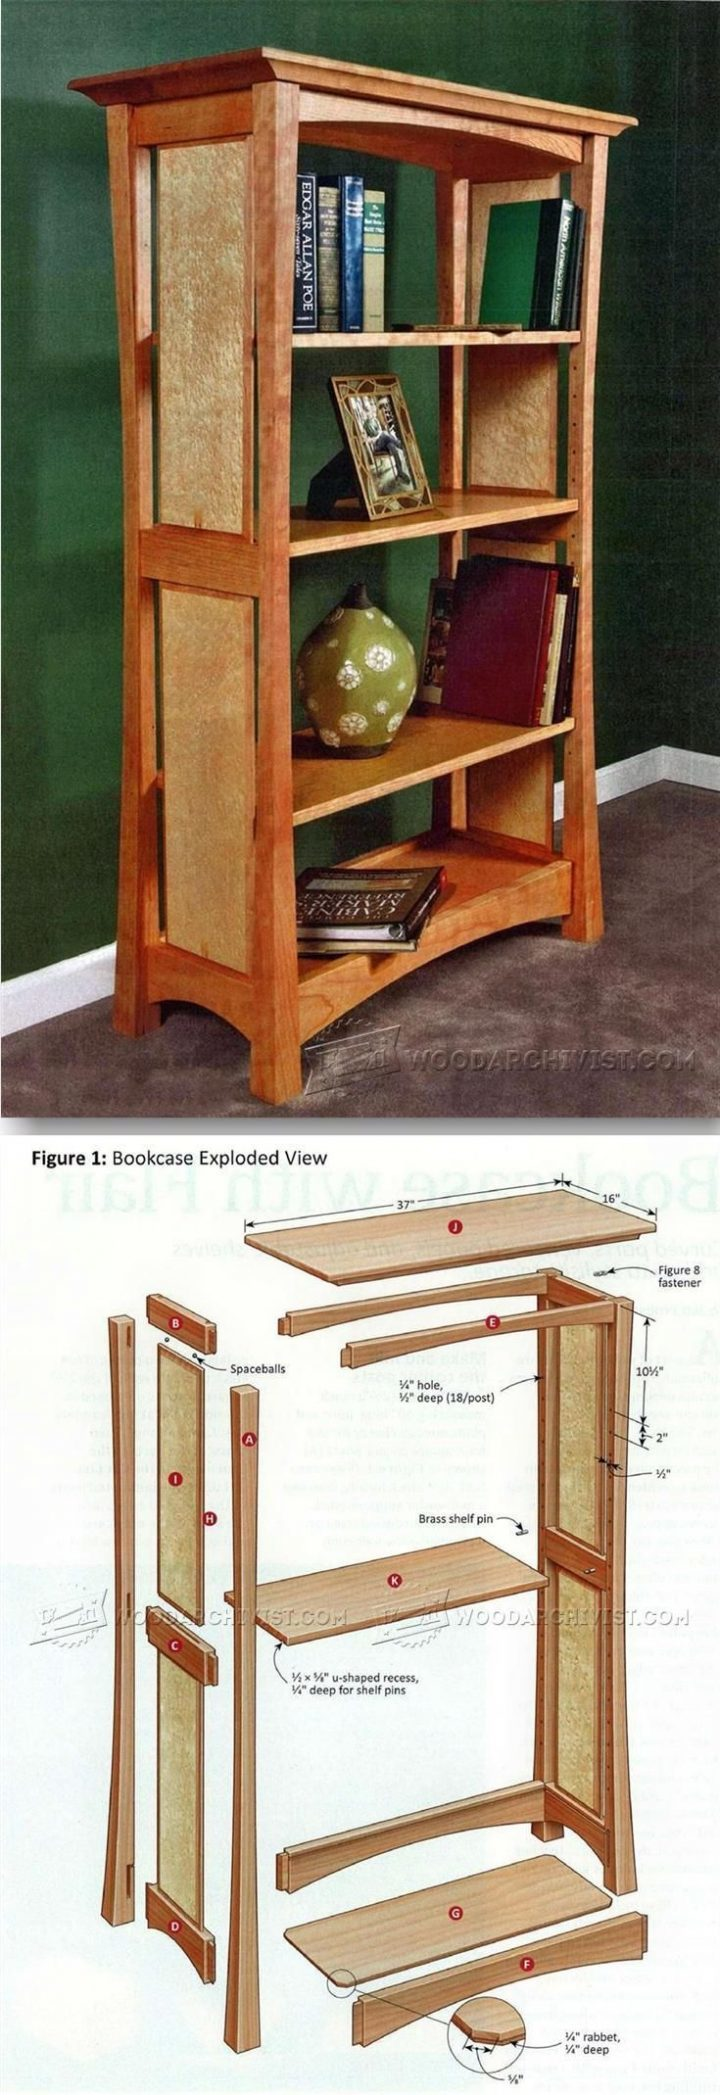 Build bookshelf – Furniture plans and projects   WoodWorking